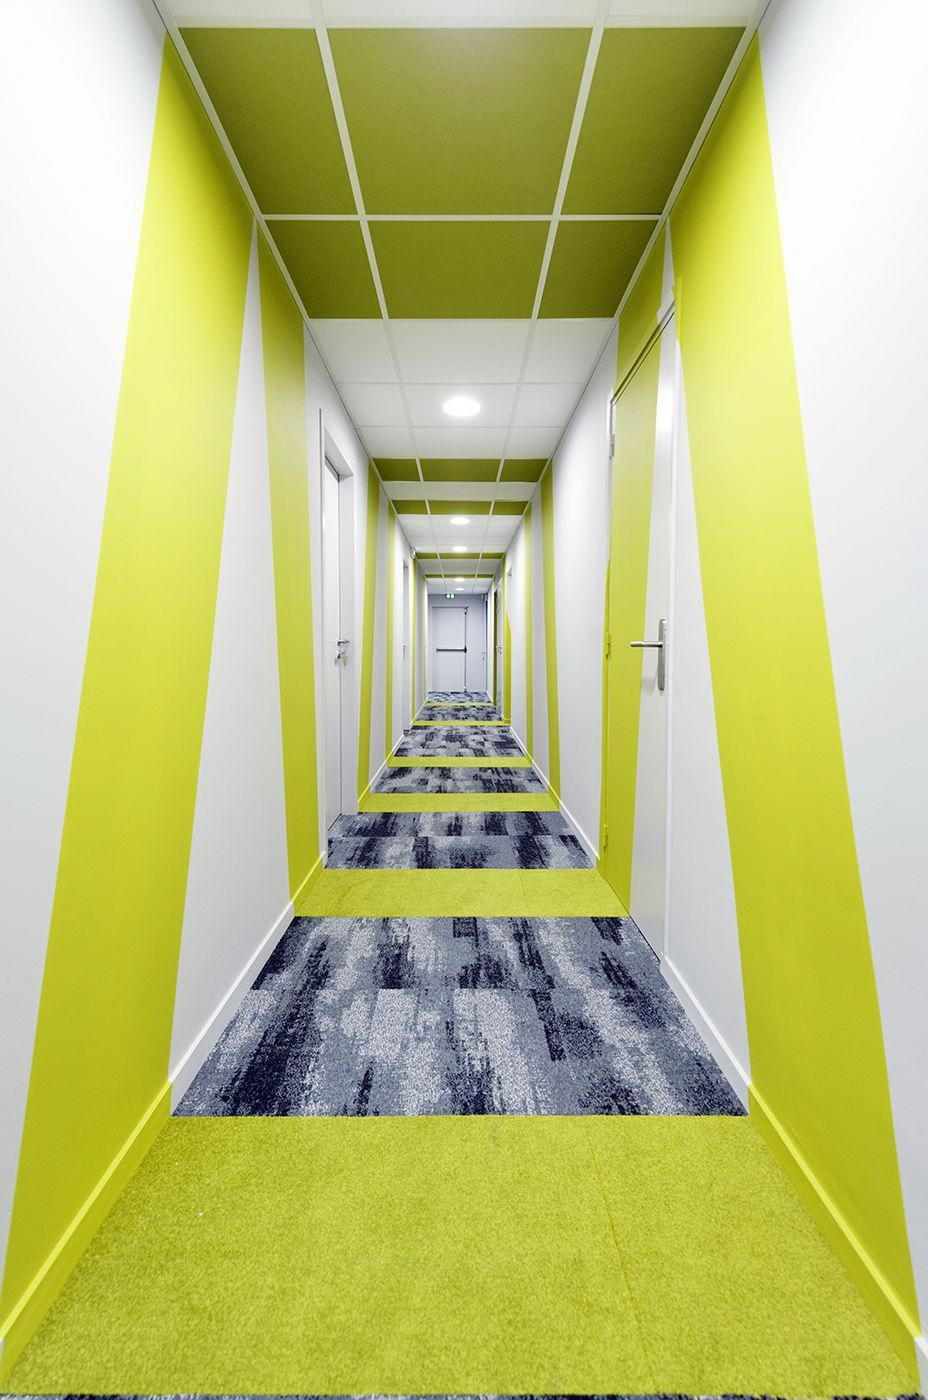 Carpet Runners Uk Discount Code 8footlongcarpetrunners Id 4900011818 Patterned Carpet Hospital Interior Design Corridor Design